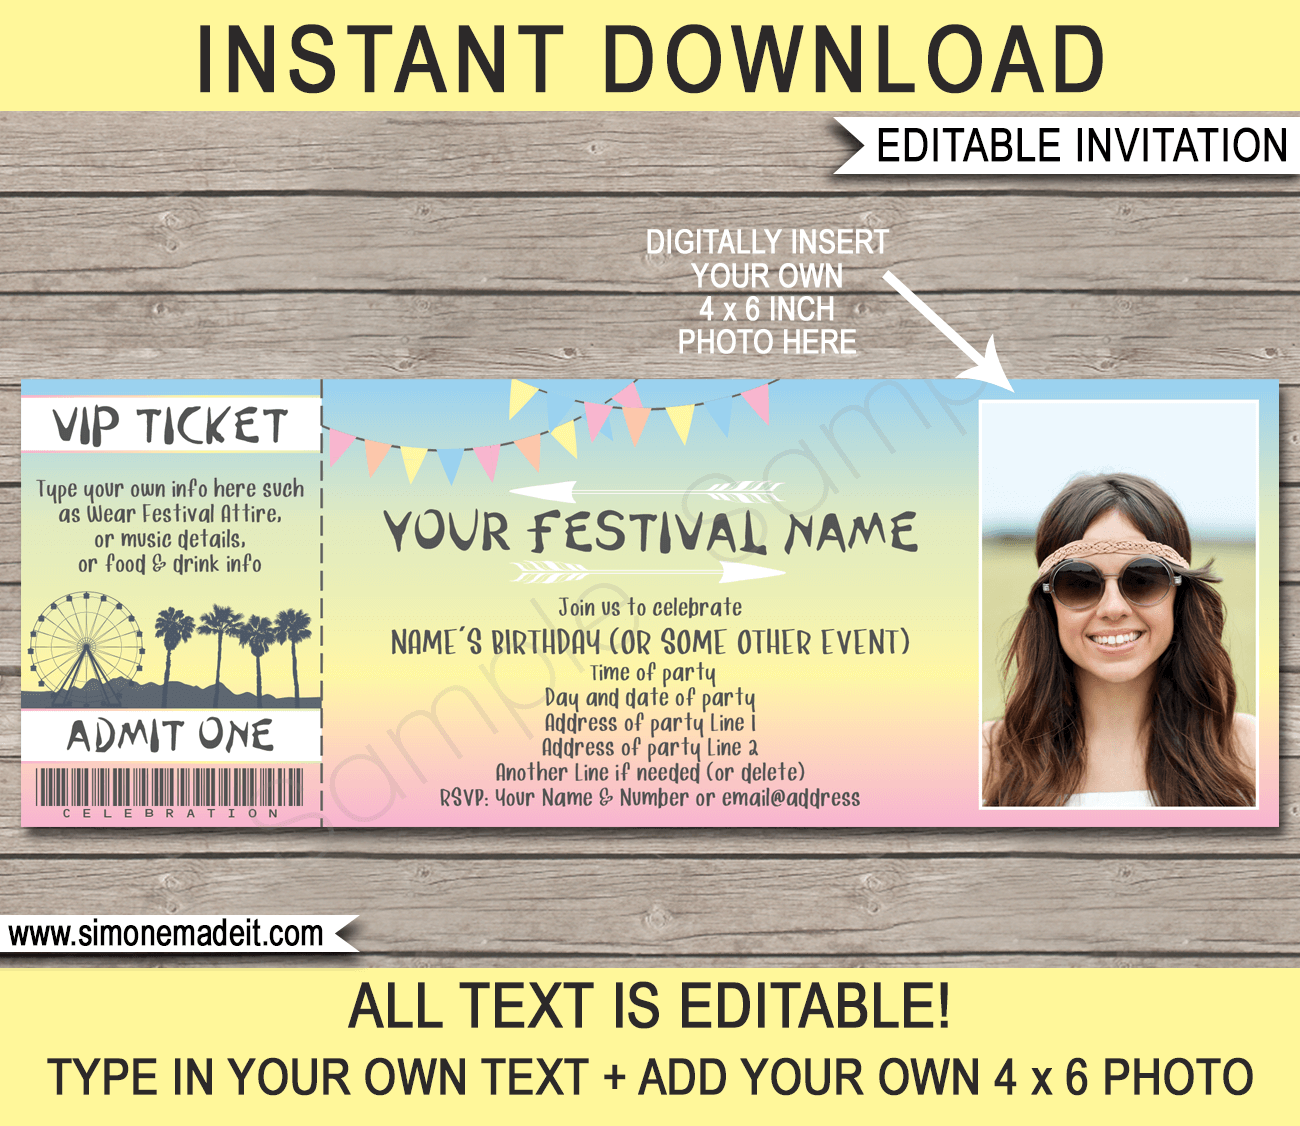 Printable Coachella Photo Ticket Invitation Template | Coachella Theme Birthday Party | Festival Invite | Kidchella, Fauxchella, Music Festival, Fete, Gala, Fair, Carnival | DIY Editable & Printable Template | Instant Download via simonemadeit.com #coachellainvites #coachellainvitation